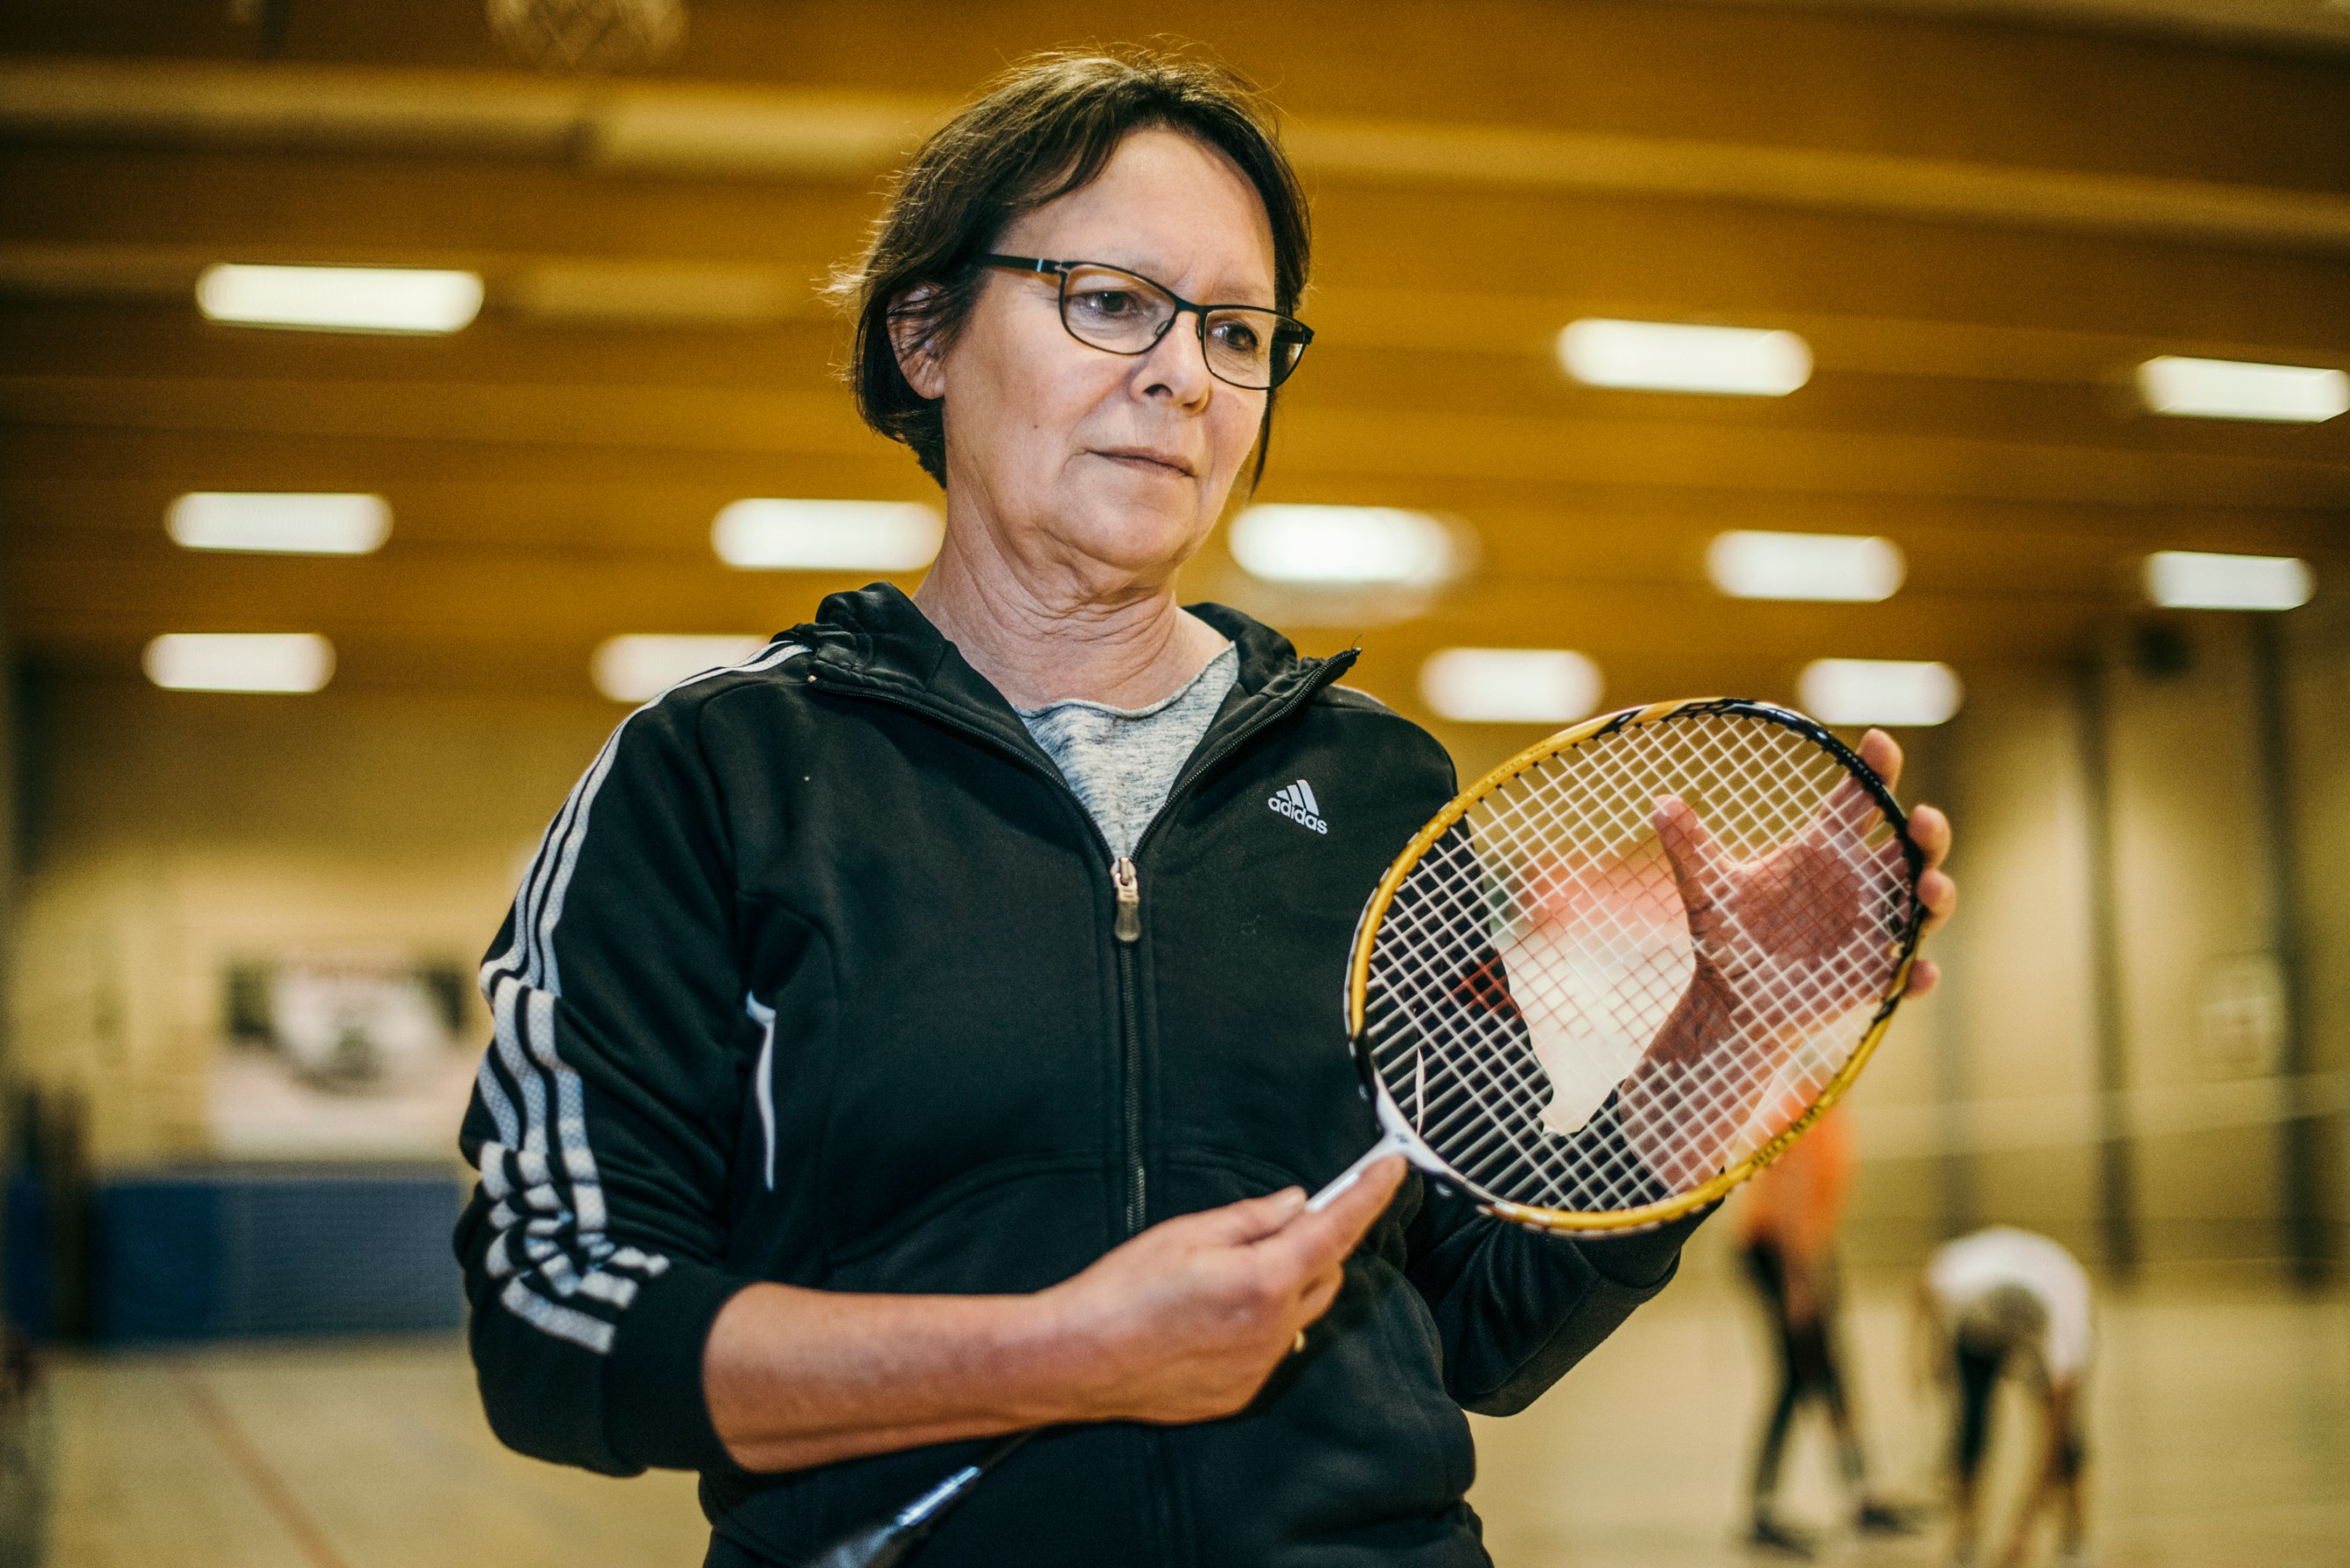 "I always have a resuscitation mask on my key ring. Inge Hjorth-Westh, 58, a teacher. It's Wednesday night, and Inge plays badminton in Rantzausminde Sports Center, as she has done every Wednesday for ten years. On the neighbouring court a senior team begin a tournament when an elderly man suddenly collapses. ""We were three who rushed over to the man. He had had a sudden cardiac arrest. Someone shouted that there was an AED in the lobby. Everybody went there and left the man alone. So I rushed back to him and took the lead. I had no idea that I had it in me. In the beginning we fumbled with the AED. None of us had tried it before. We were nervous about whether we put the pads on wrong. But it worked, and the AED started talking to me. It made it easier until I had to blow. The man who had fallen was foaming at the mouth. It was disgusting. But I overcame my reservations and went to work. It is still hard to think about. Now I know that there is a small resuscitation mask in the AED, but I didn't see it. Today I always carry one in my key ring. We took turns in giving heart massage and gave shock with the AED a few times. The man began to rattle. When the paramedics took over, I ran to the bathroom and washed my mouth with soap. Not very heroic, but it was my immediate physical reaction to the shock. And then I thought: ""Now I will sign up for an AED course."""